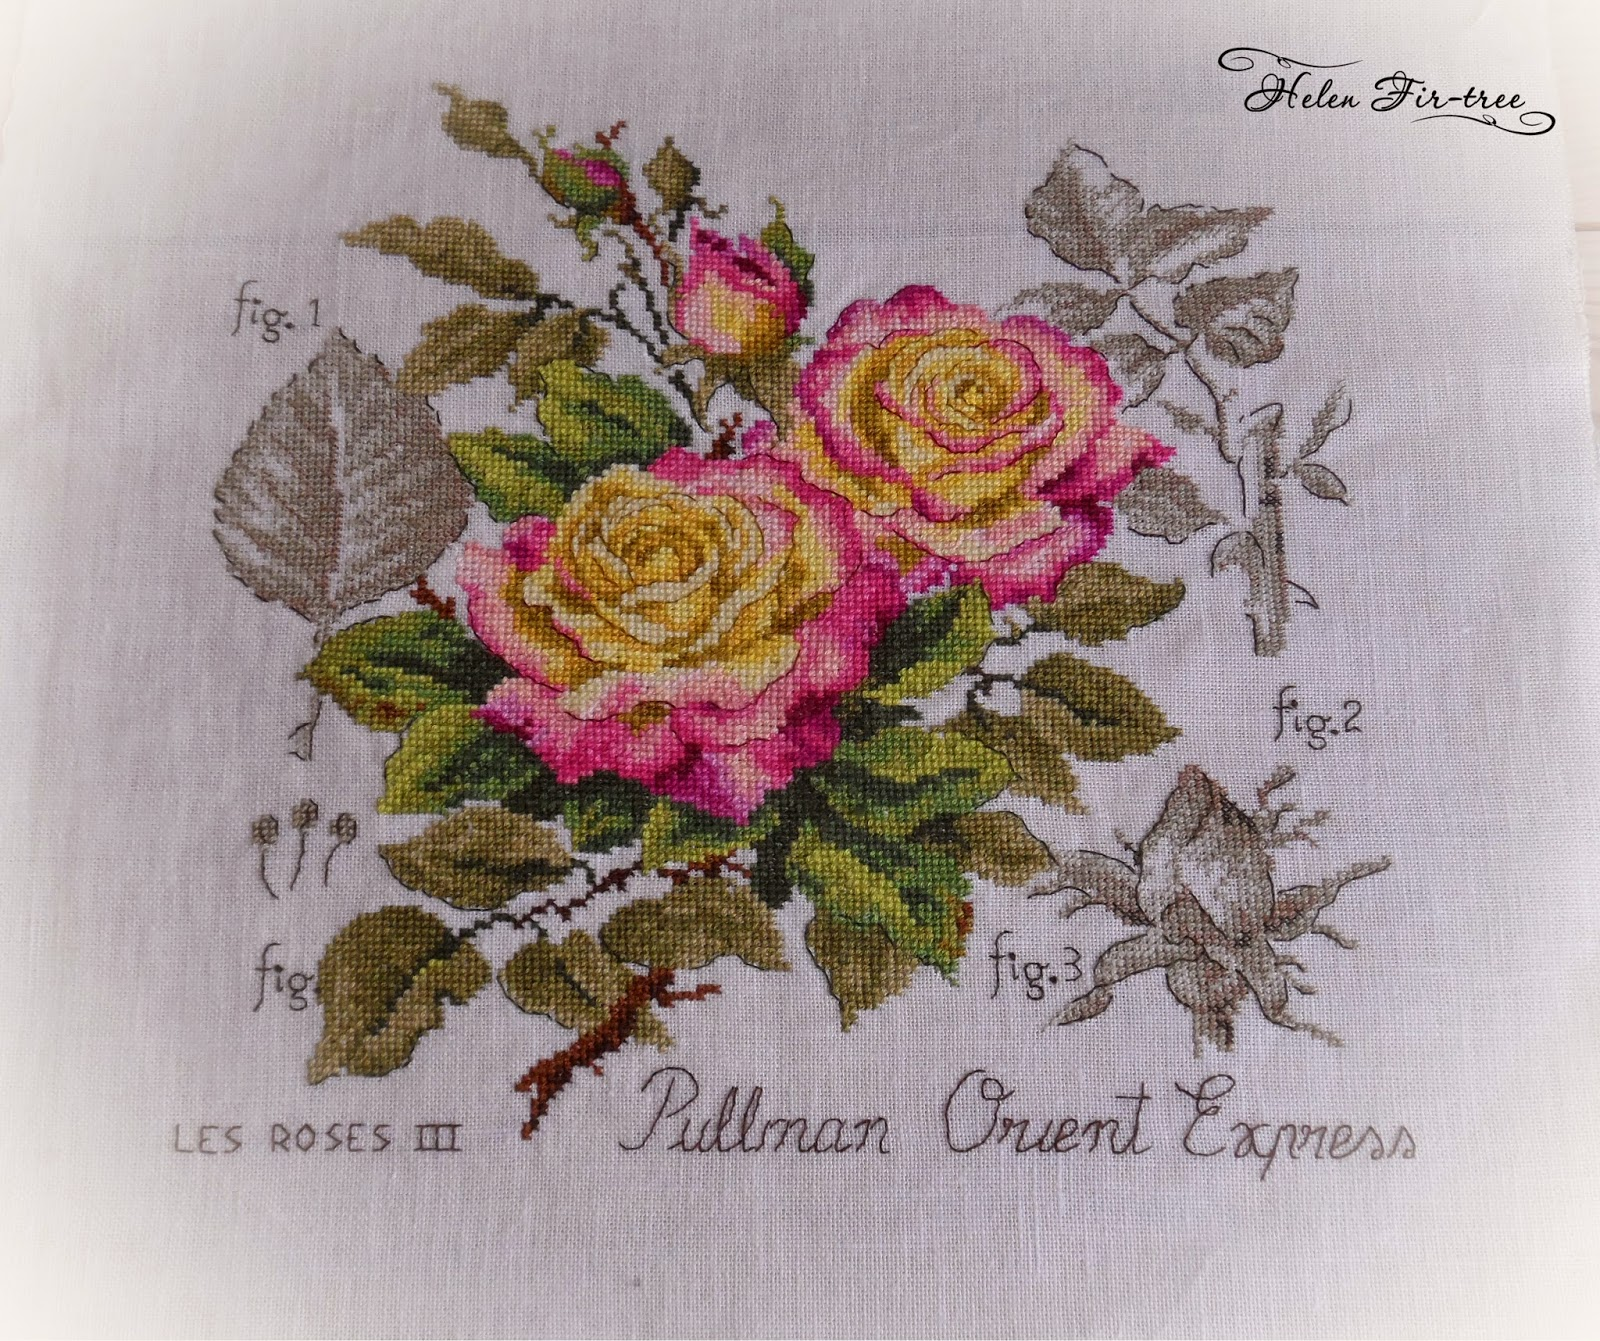 Helen Fir-tree вышивка cross-stitch Pullman Oreint Express 4